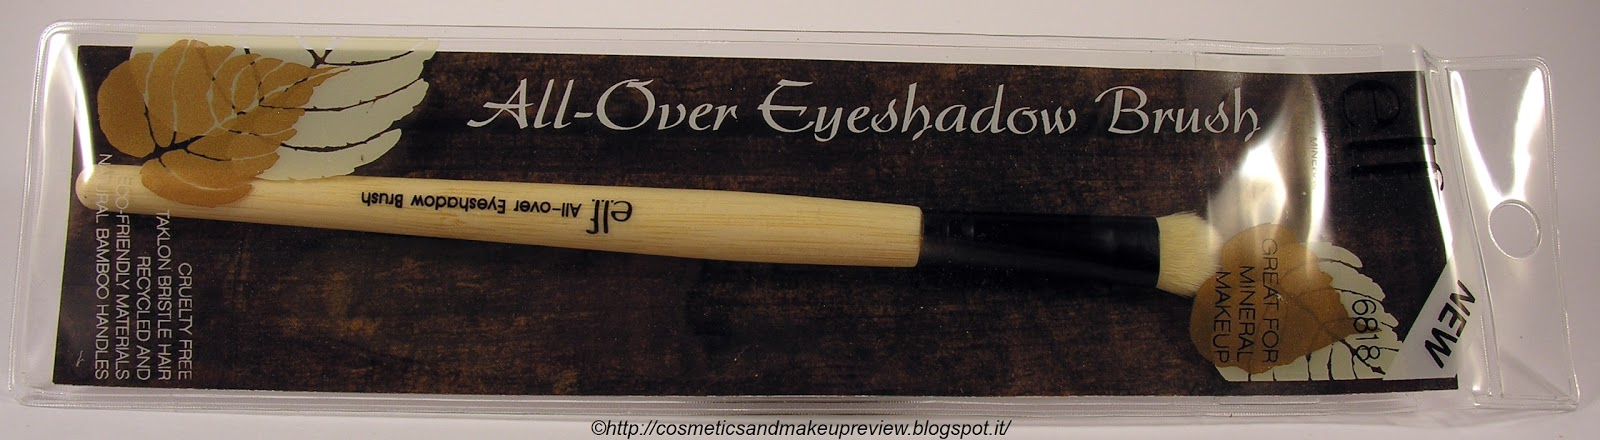 E.L.F.-All-Over-Eyeshadow-Brush-packaging